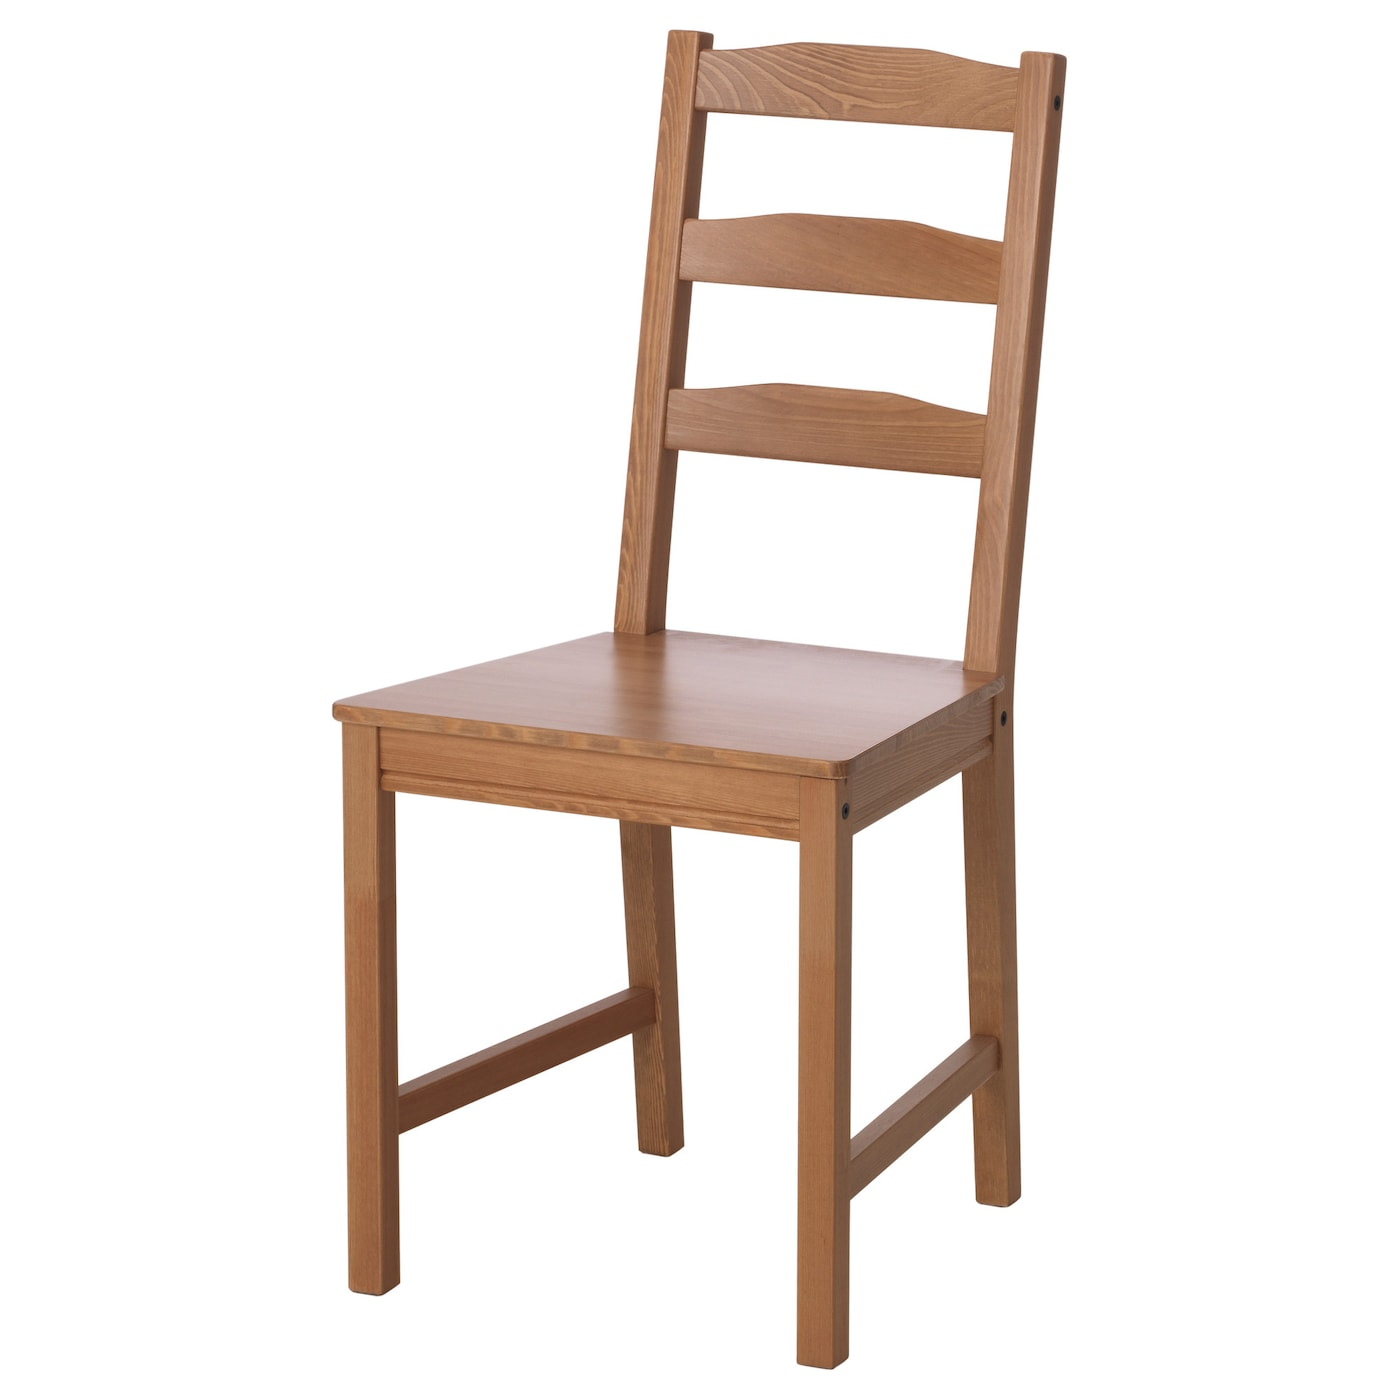 Dining Chairs - Kitchen Chairs - IKEA